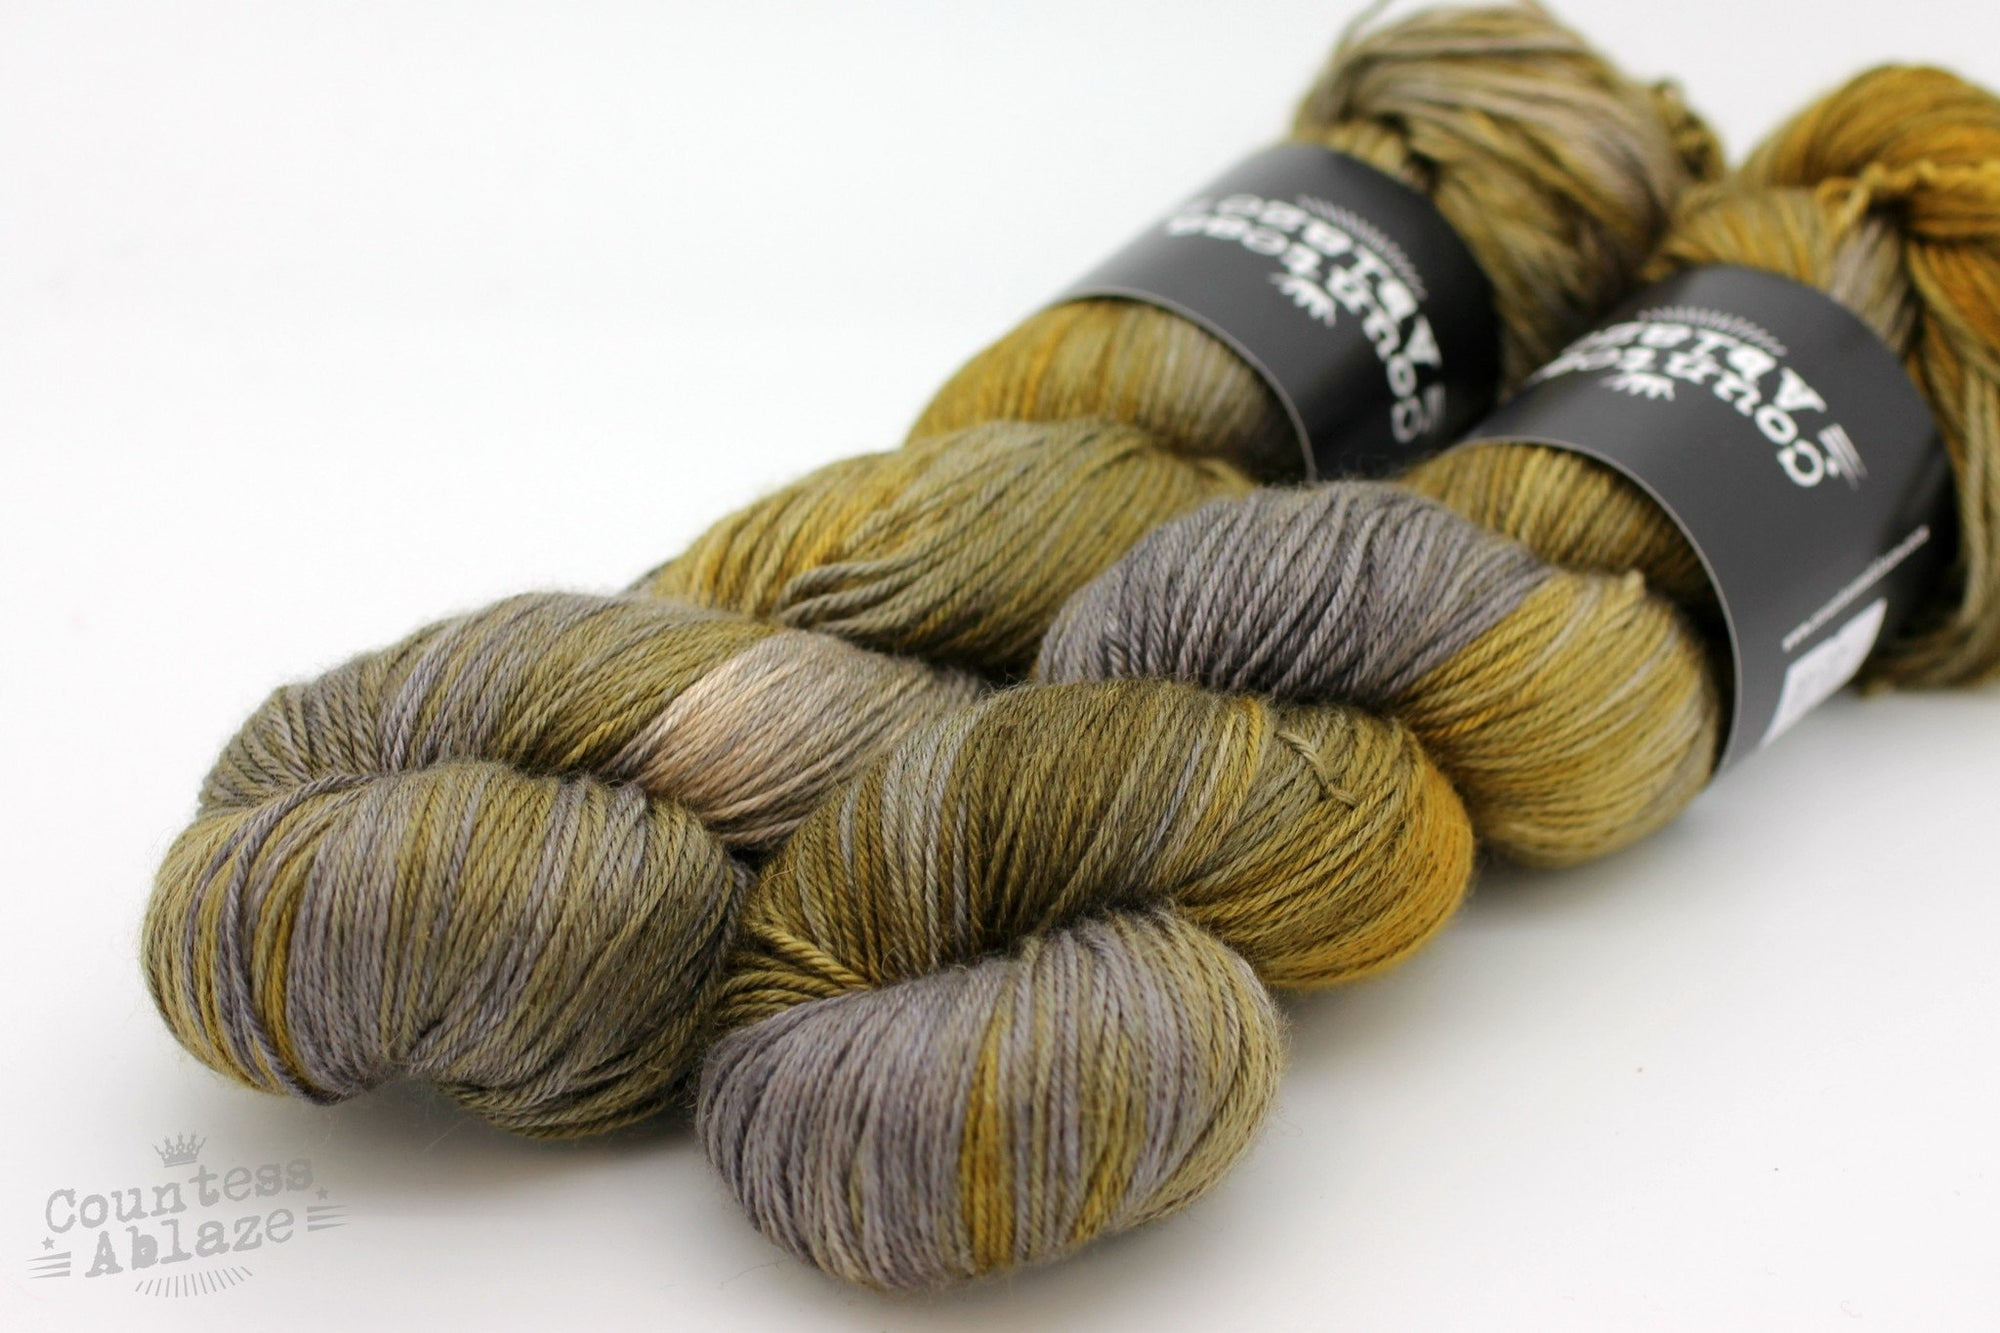 Colourway : Industrial | Countess Ablaze